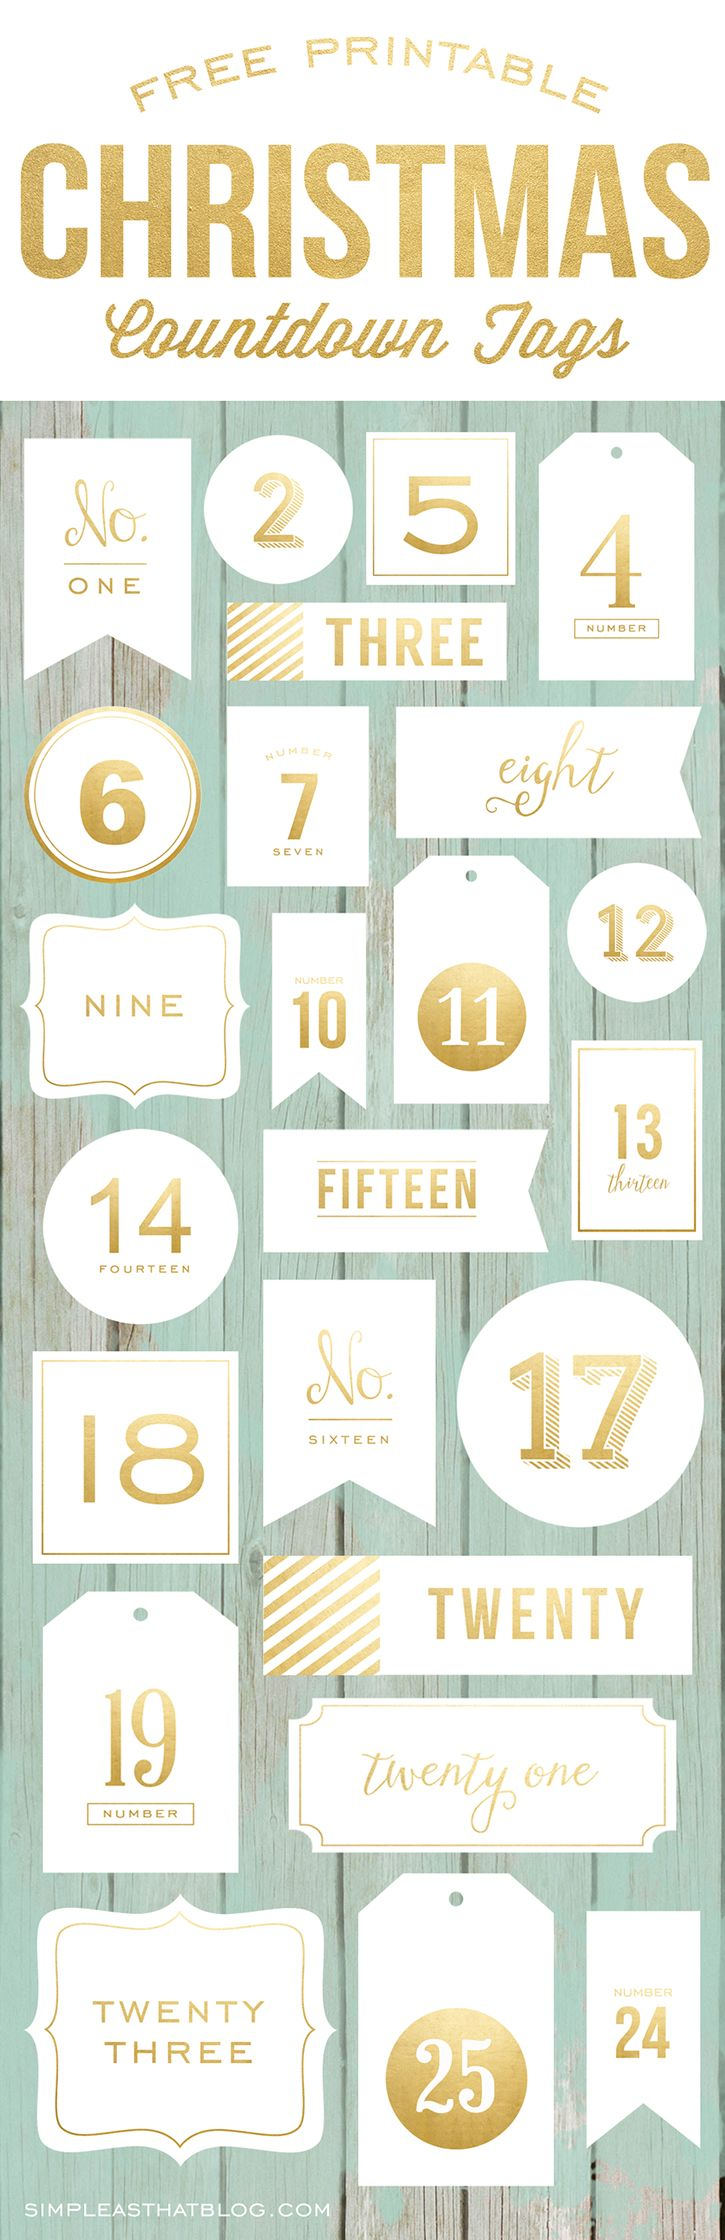 Zum Ausdrucken für Adventskalender! FREE Printable Gold Foil Advent Calendar / Christmas Countdown Tags